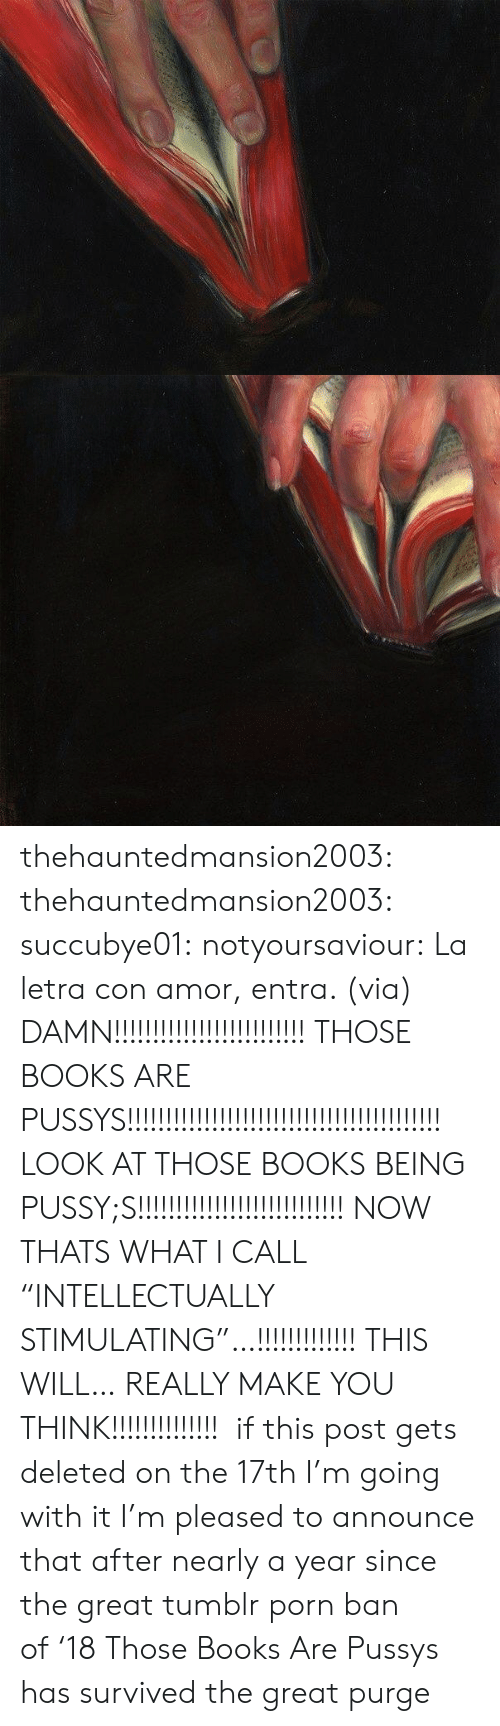 "Pussys: thehauntedmansion2003:  thehauntedmansion2003:  succubye01:  notyoursaviour:  La letra con amor, entra. (via)  DAMN!!!!!!!!!!!!!!!!!!!!!!!!! THOSE BOOKS ARE PUSSYS!!!!!!!!!!!!!!!!!!!!!!!!!!!!!!!!!!!!!!!!! LOOK AT THOSE BOOKS BEING PUSSY;S!!!!!!!!!!!!!!!!!!!!!!!!!!! NOW THATS WHAT I CALL ""INTELLECTUALLY STIMULATING""…!!!!!!!!!!!!! THIS WILL… REALLY MAKE YOU THINK!!!!!!!!!!!!!!   if this post gets deleted on the 17th I'm going with it  I'm pleased to announce that after nearly a year since the great tumblr porn ban of '18 Those Books Are Pussys has survived the great purge"